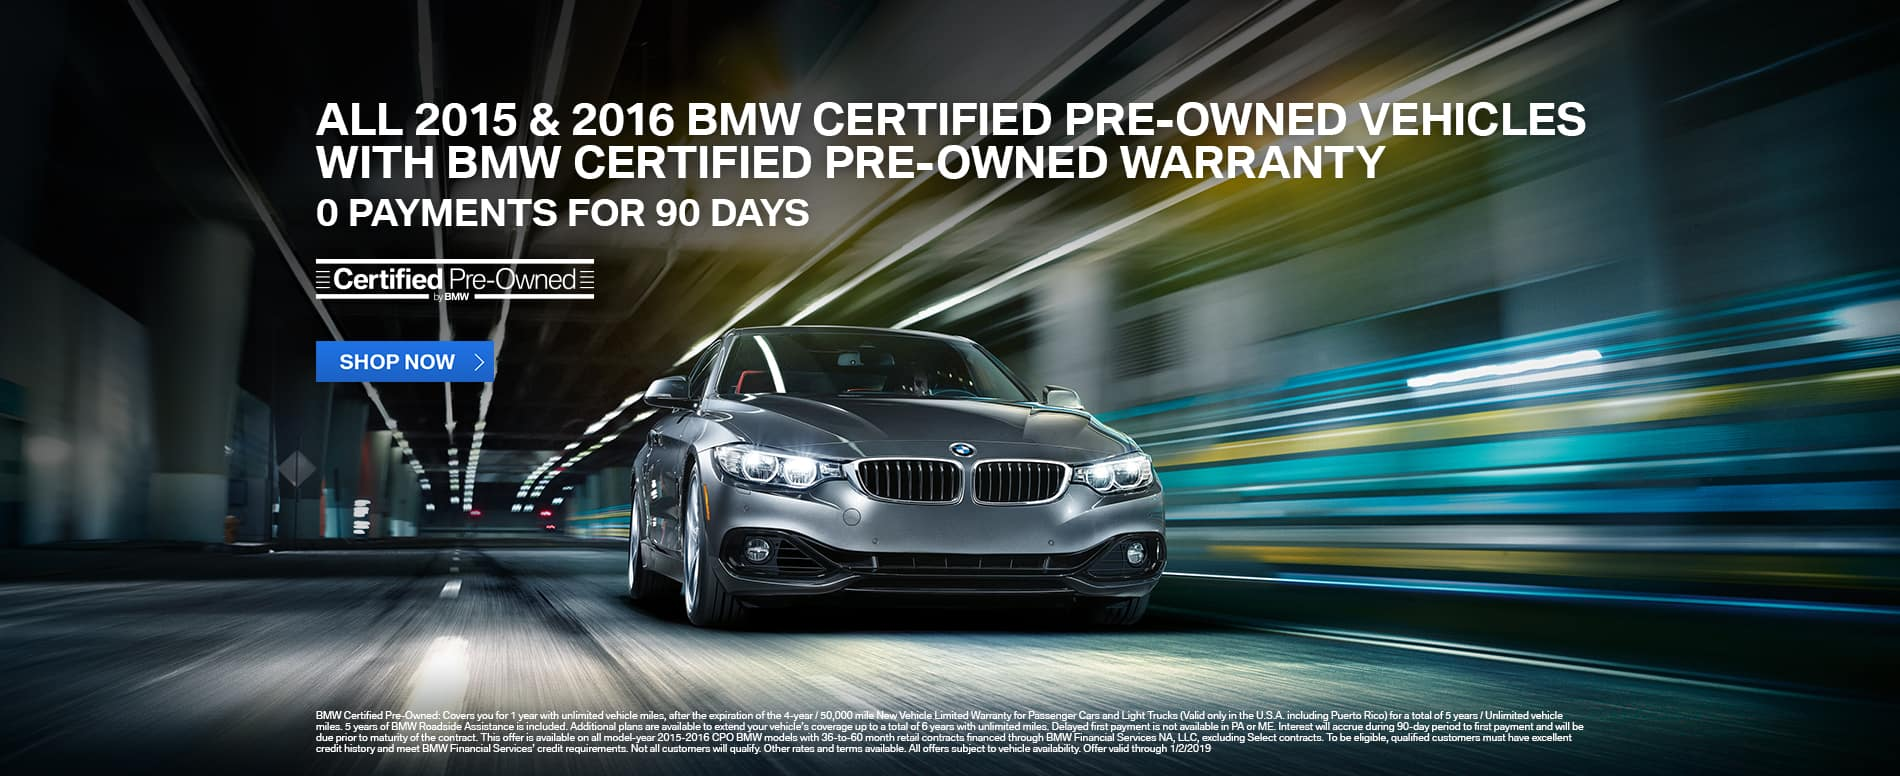 beaumont-bmw-get-2015-2016-bmw-cpo-with-cpo-warranty-zero-payments-for-90-days